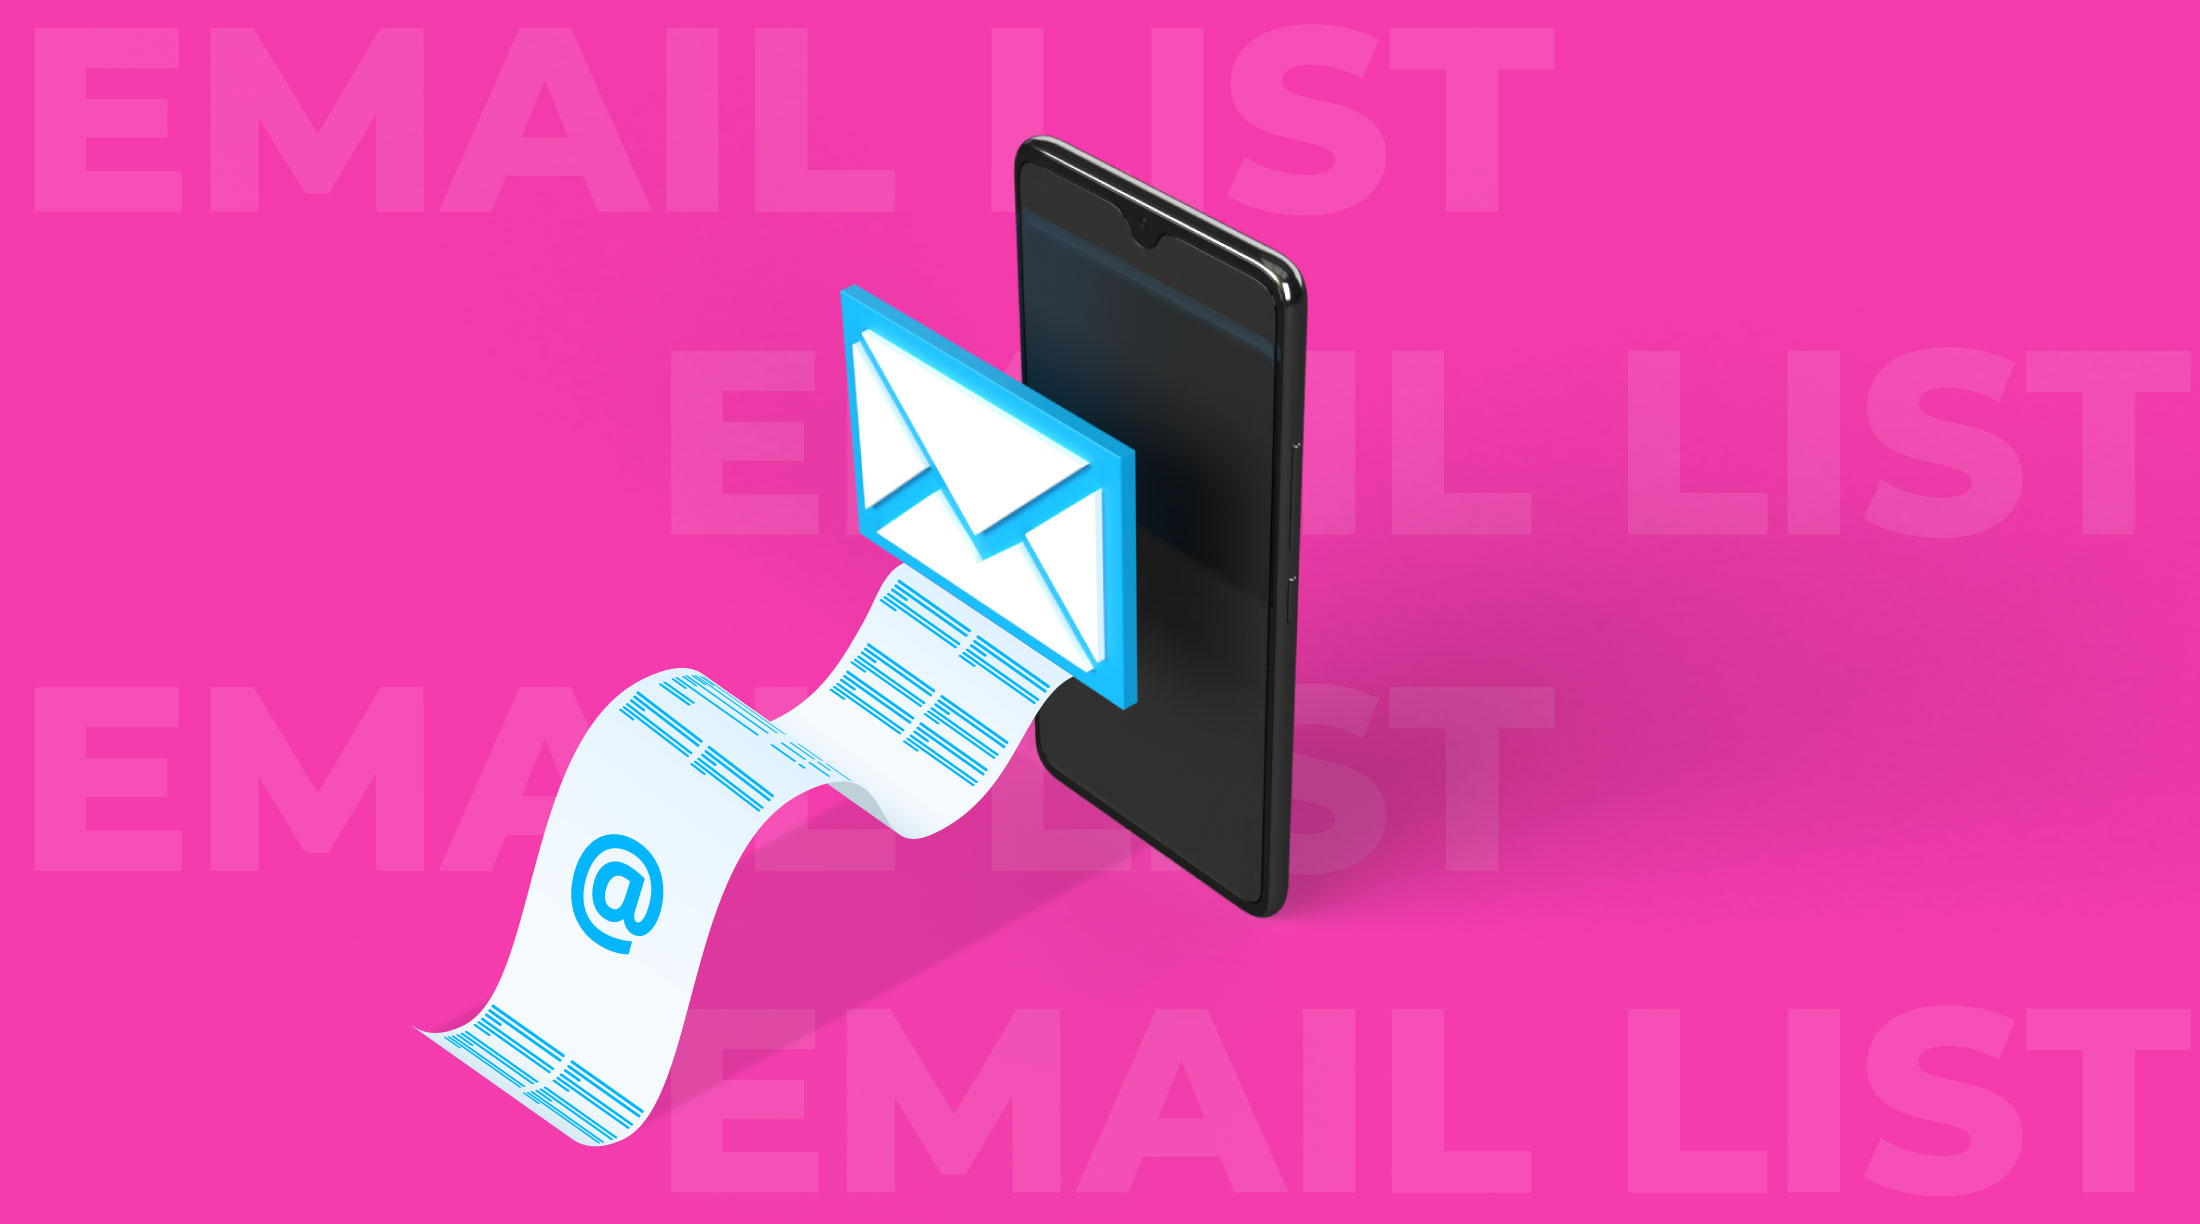 6 reasons to buy email lists (and you won't like them!)